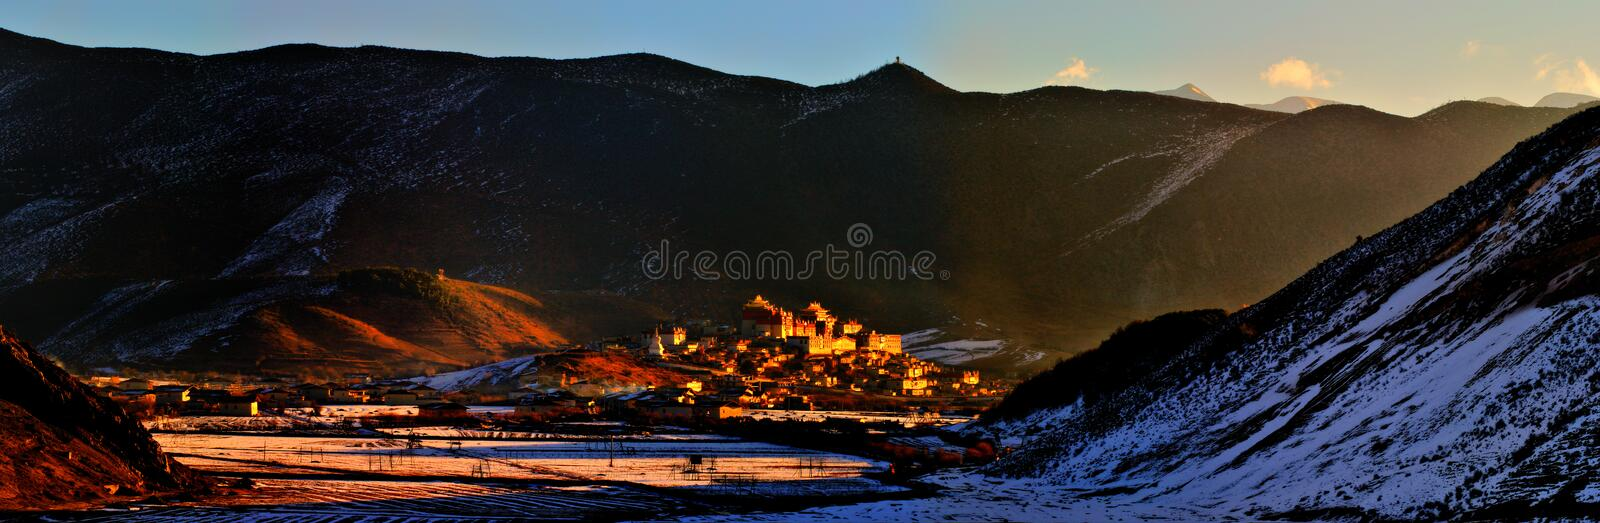 Shangri-La - Gedan Songzanlinsi. Buddhist holy places under the sun - Shangri-La royalty free stock images